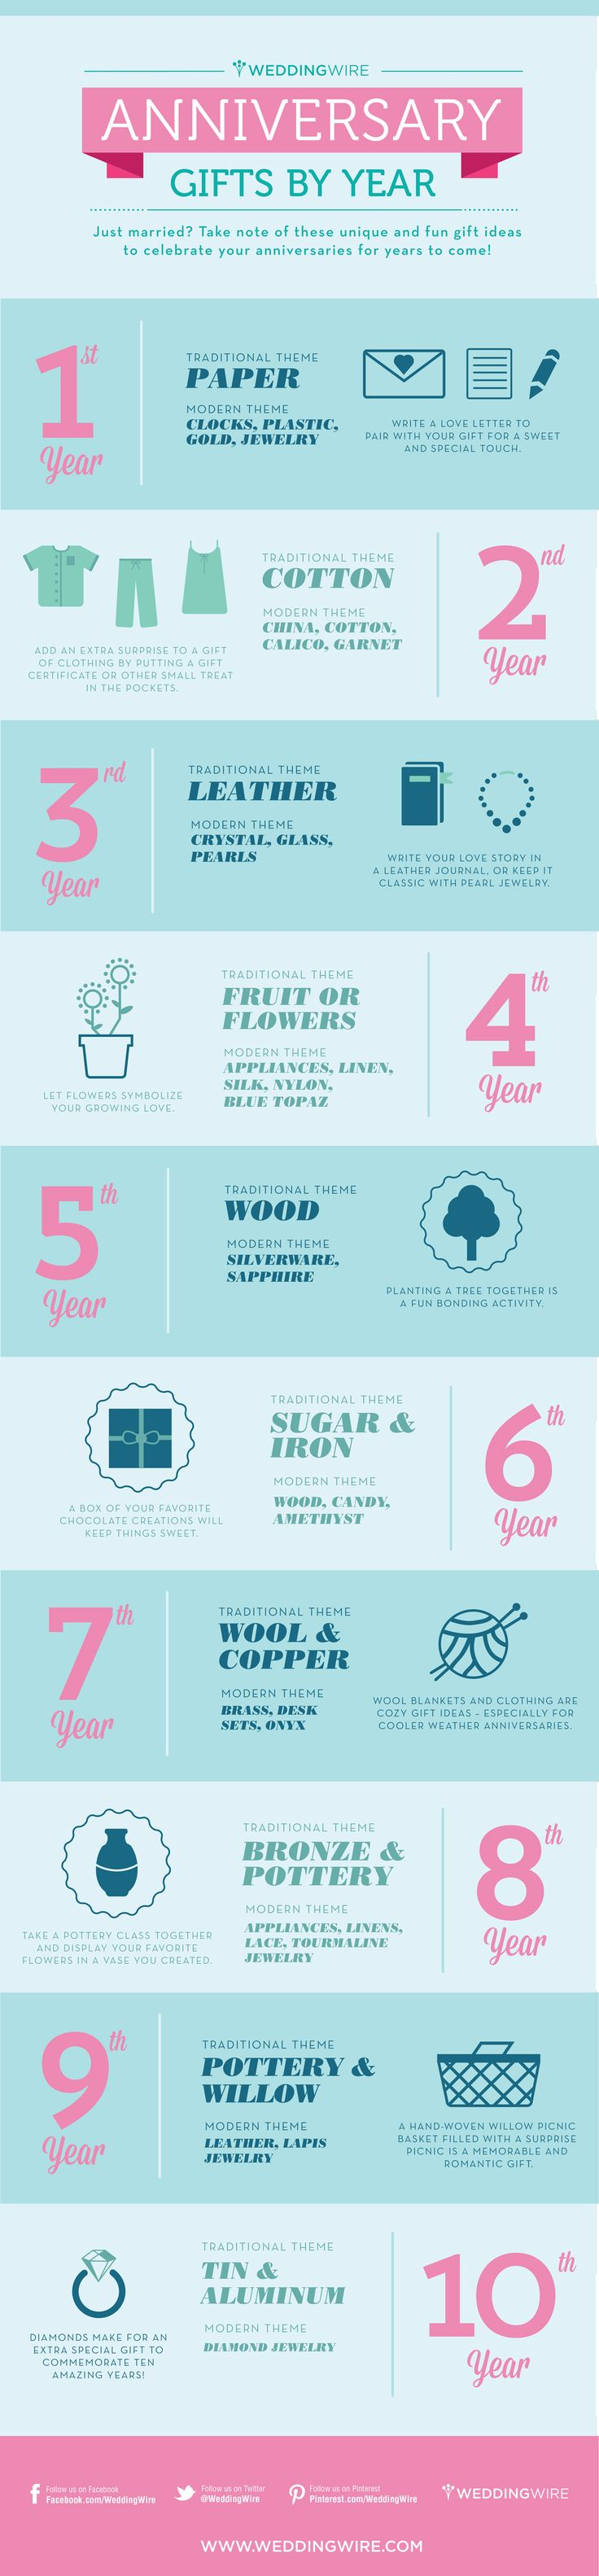 128 Best Aniversario Images On Pinterest Gift Ideas Presents And